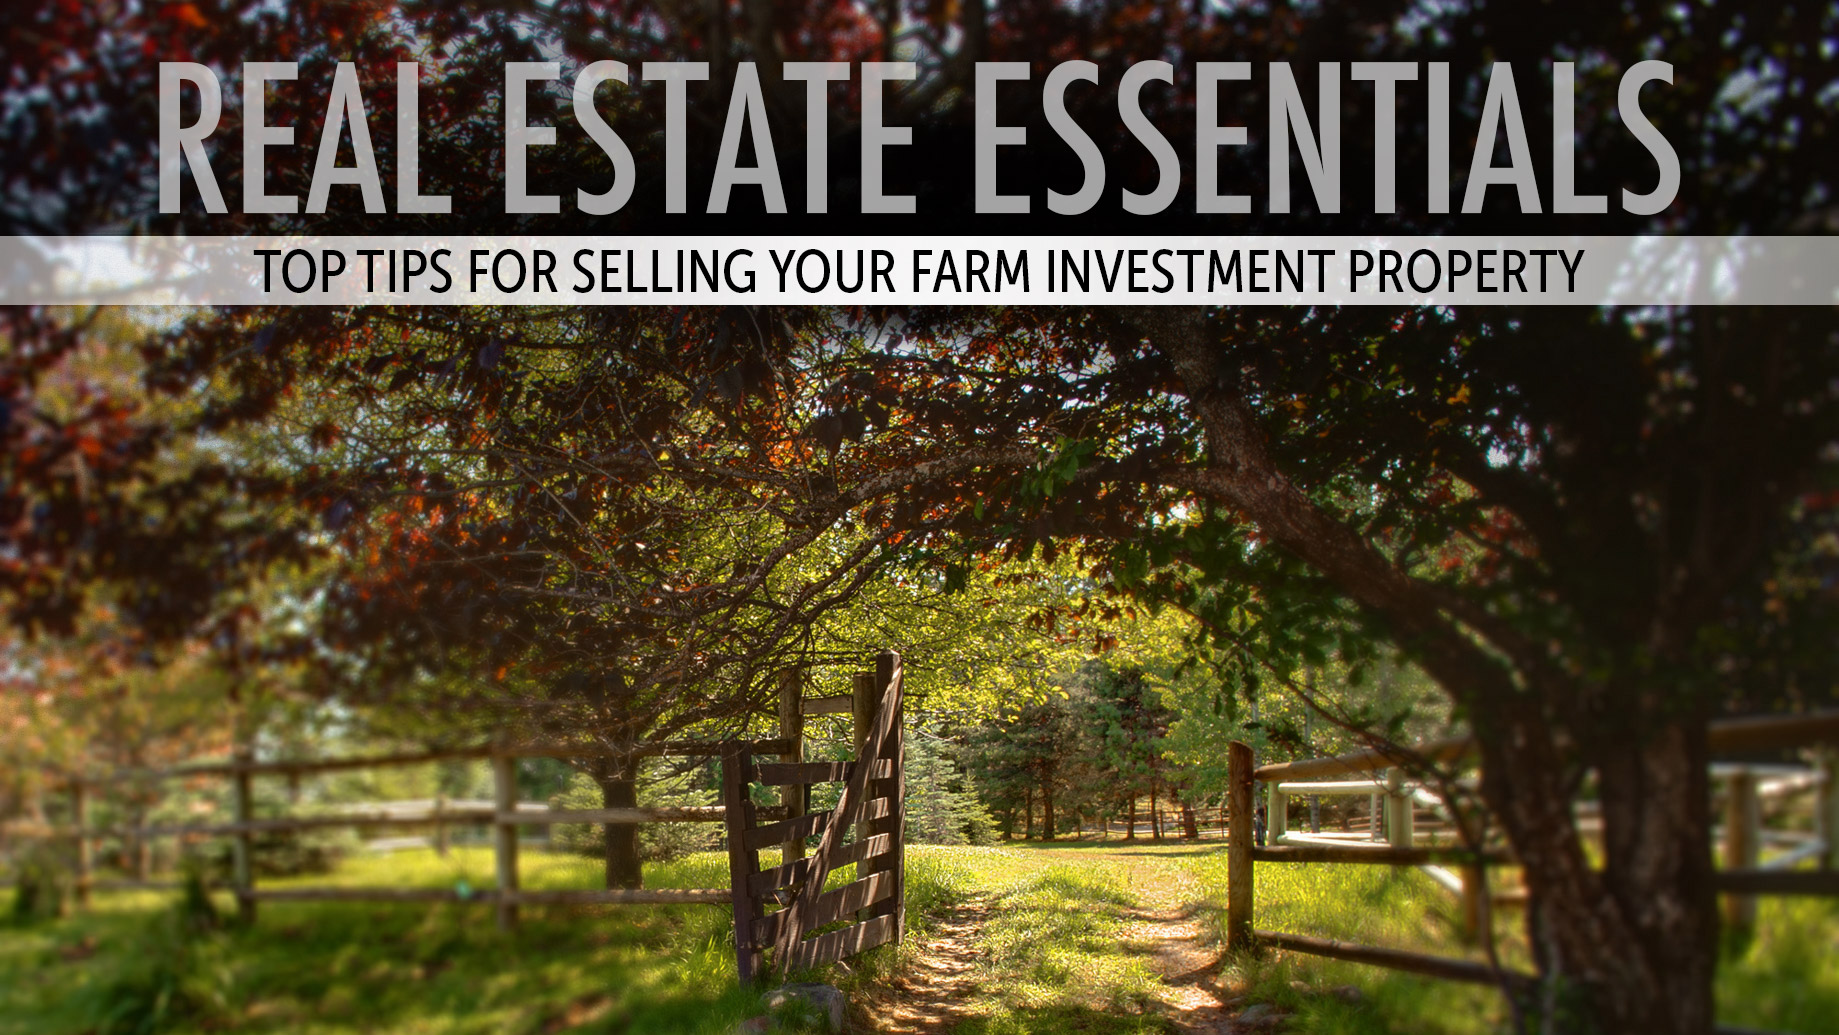 Real Estate Essentials - Top Tips for Selling Your Farm Investment Property